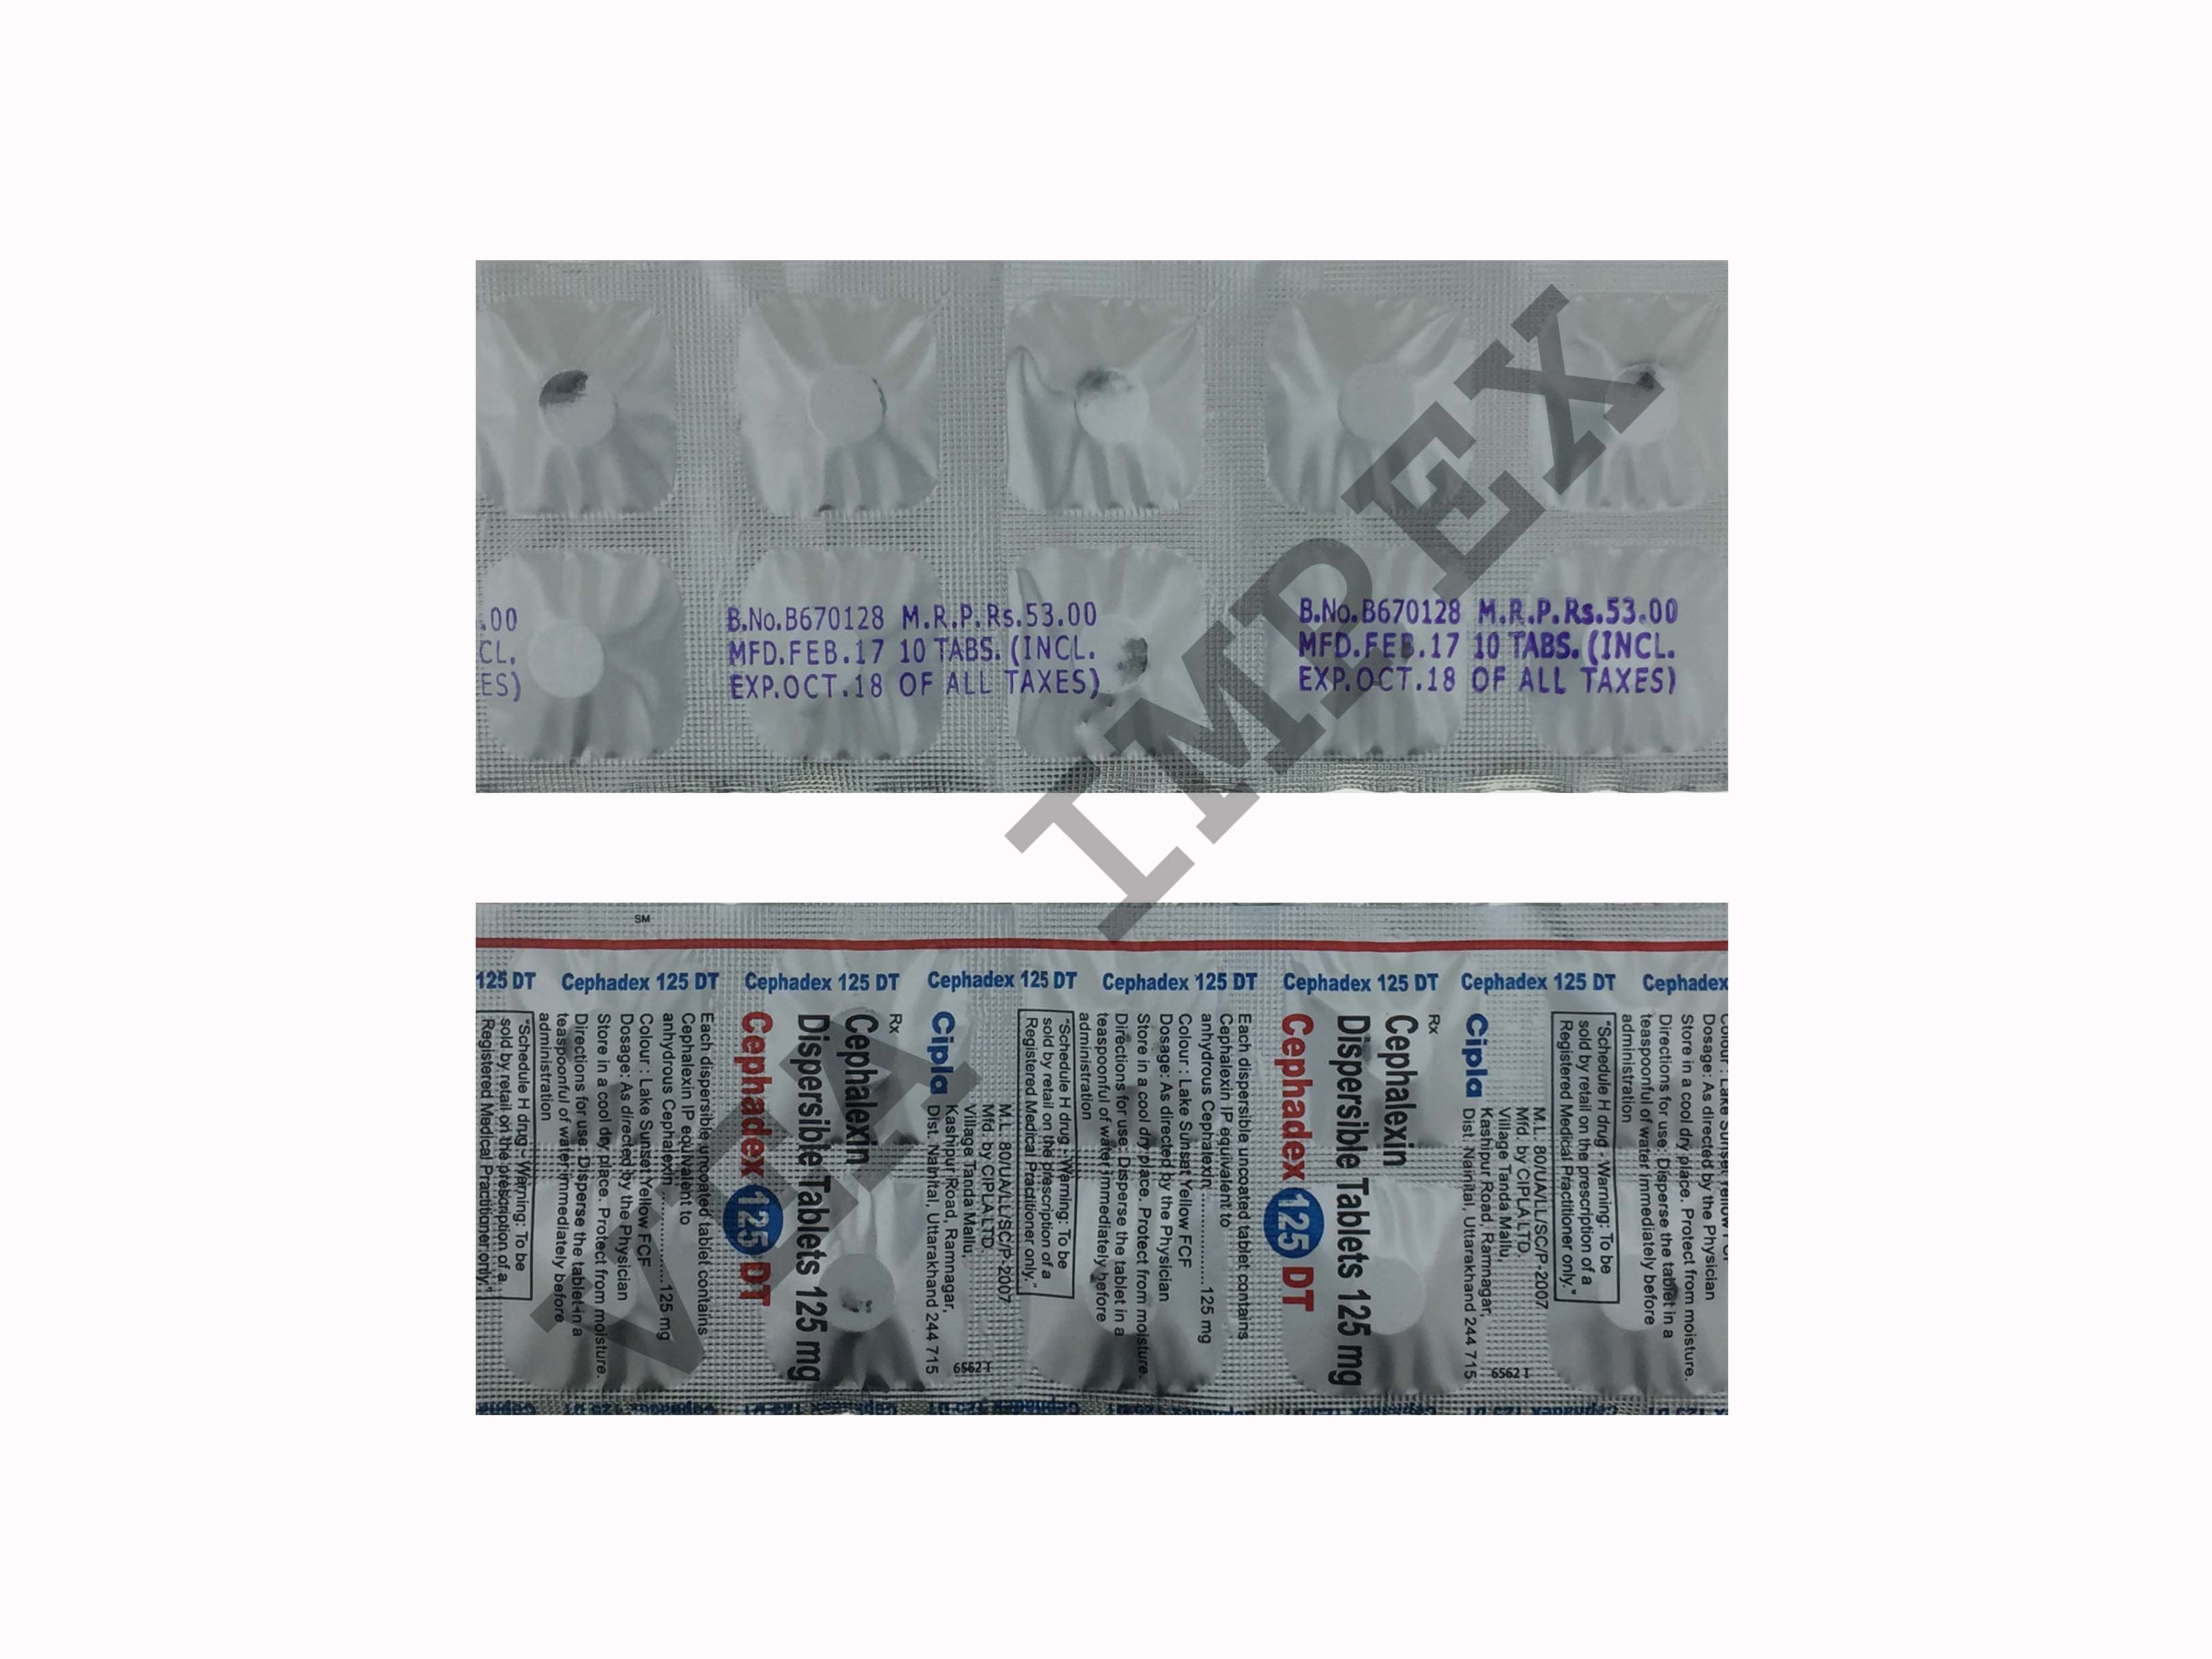 Cephadex 125mg(Cephalexin Dispersible Tablets)